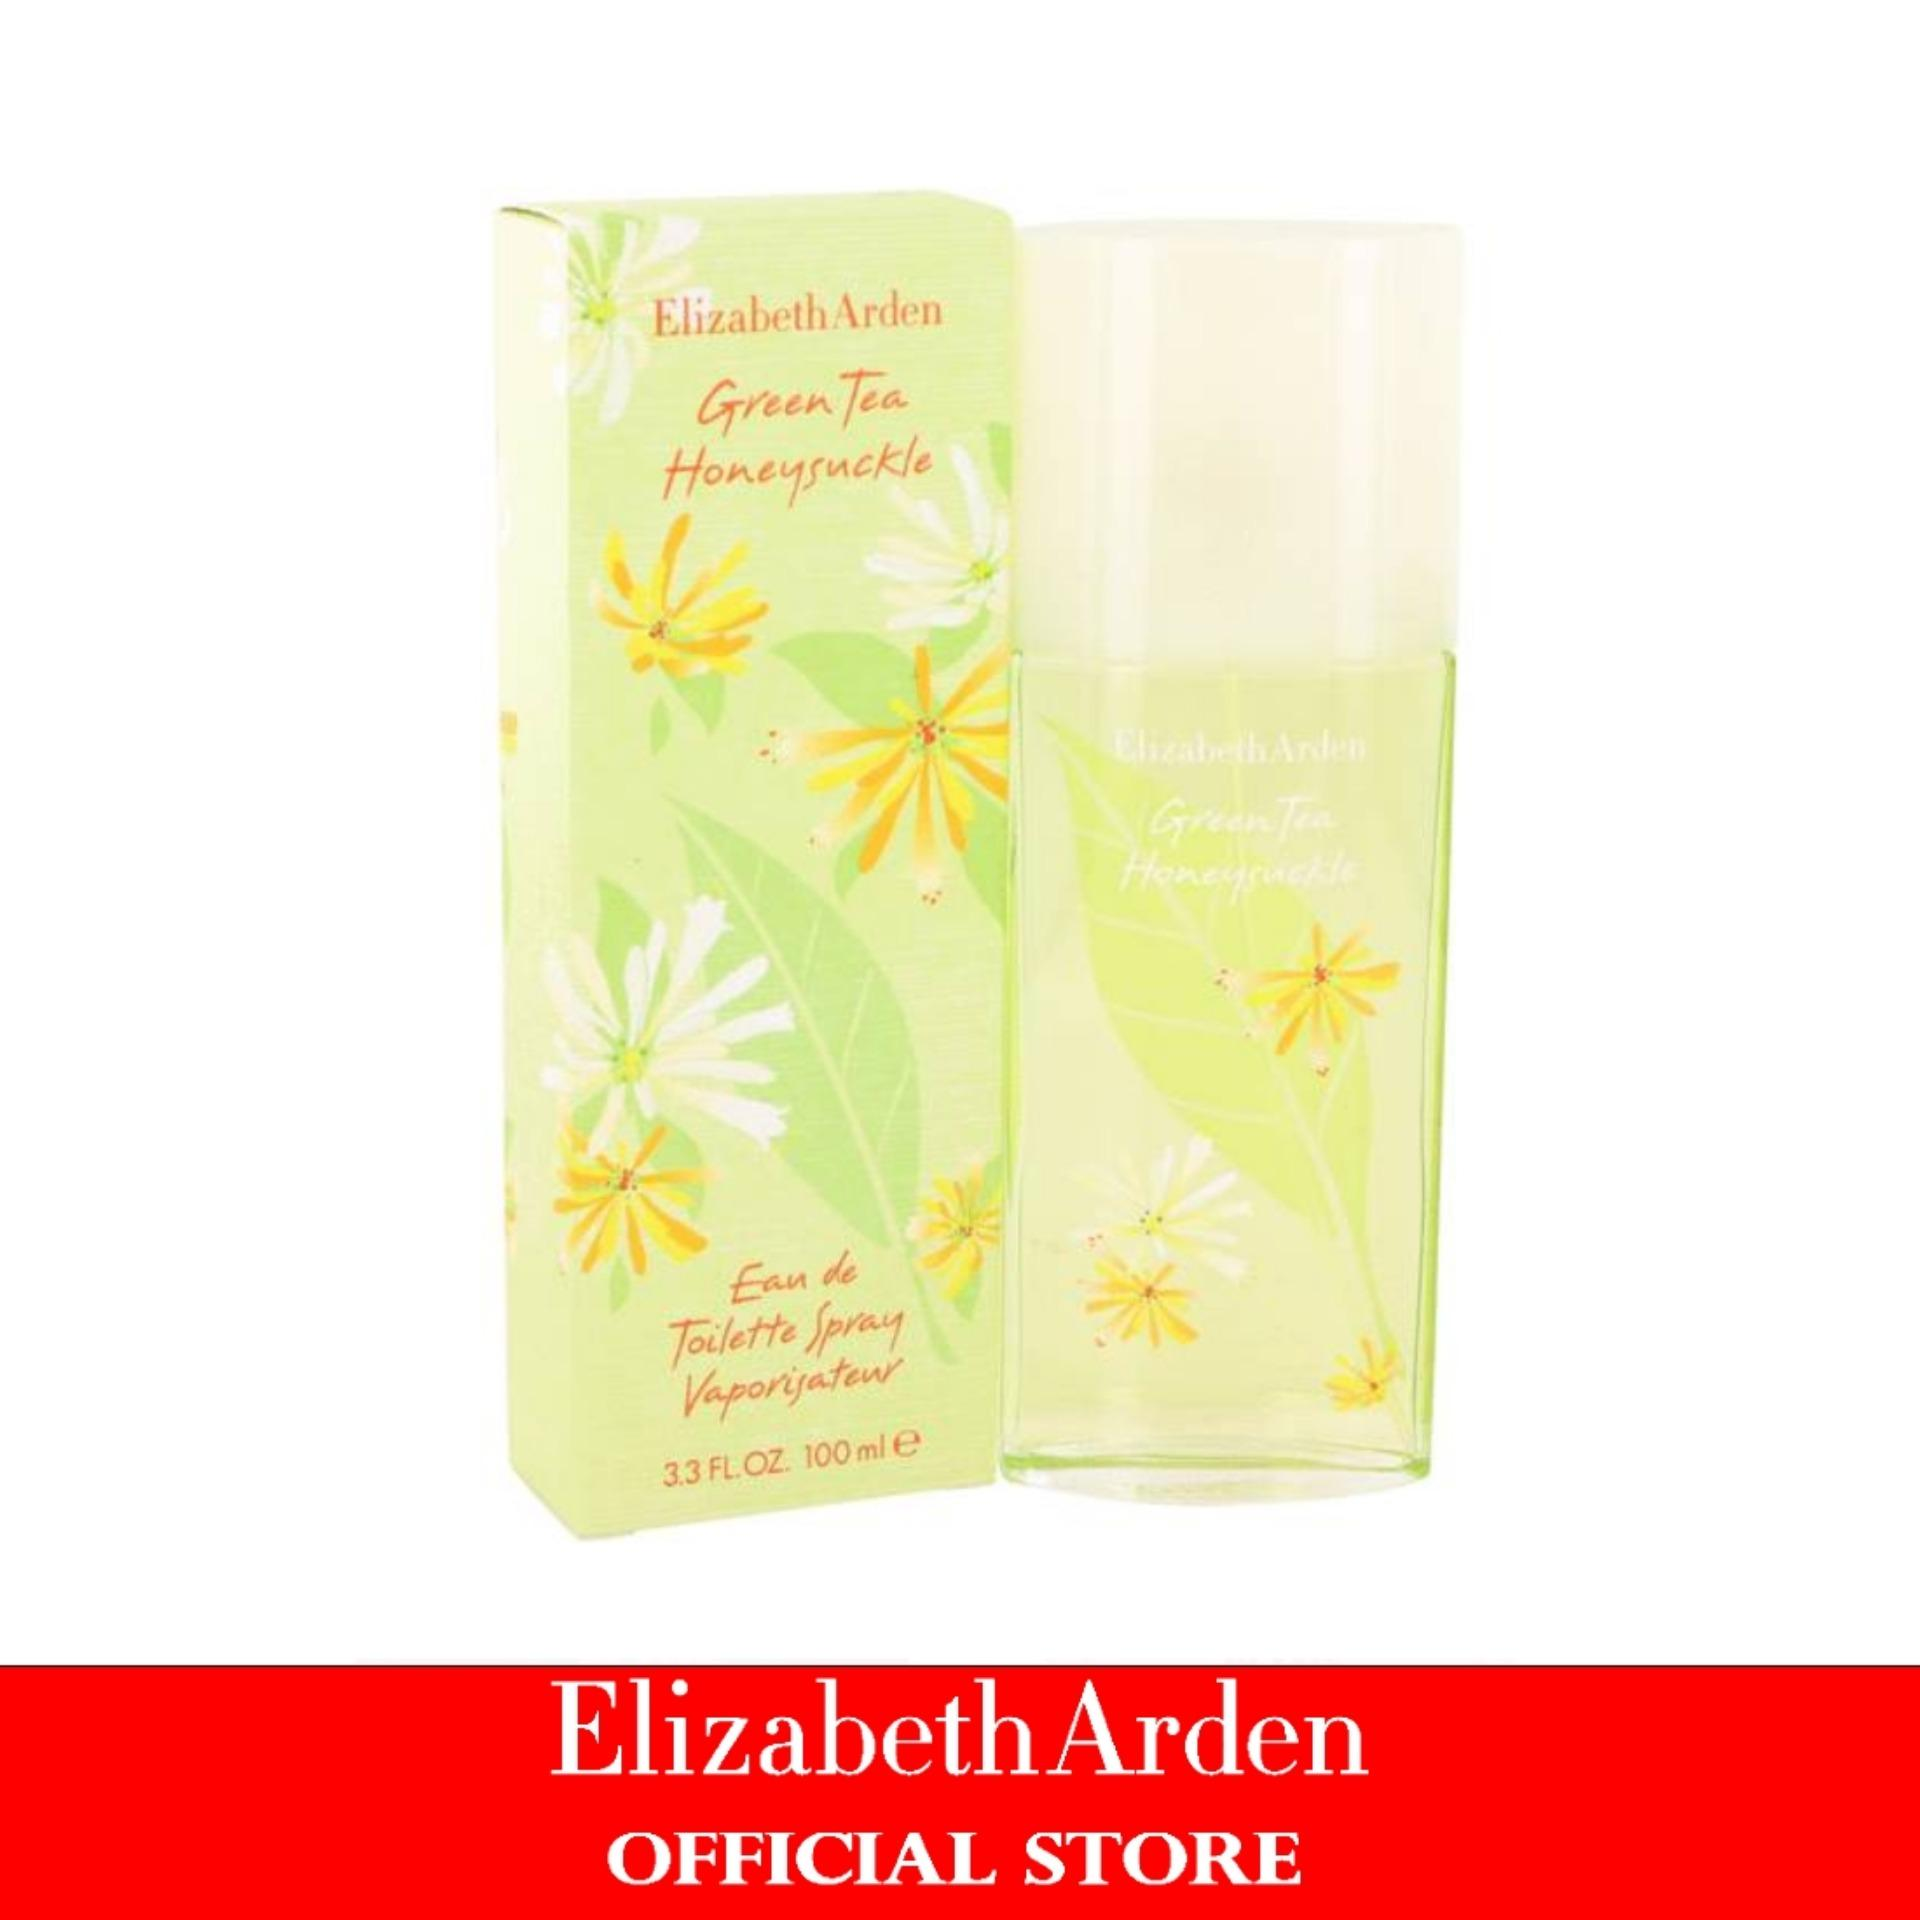 Where To Buy Elizabeth Arden Green Tea Honeysuckle Eau De Toilette Spray 1 7 Oz